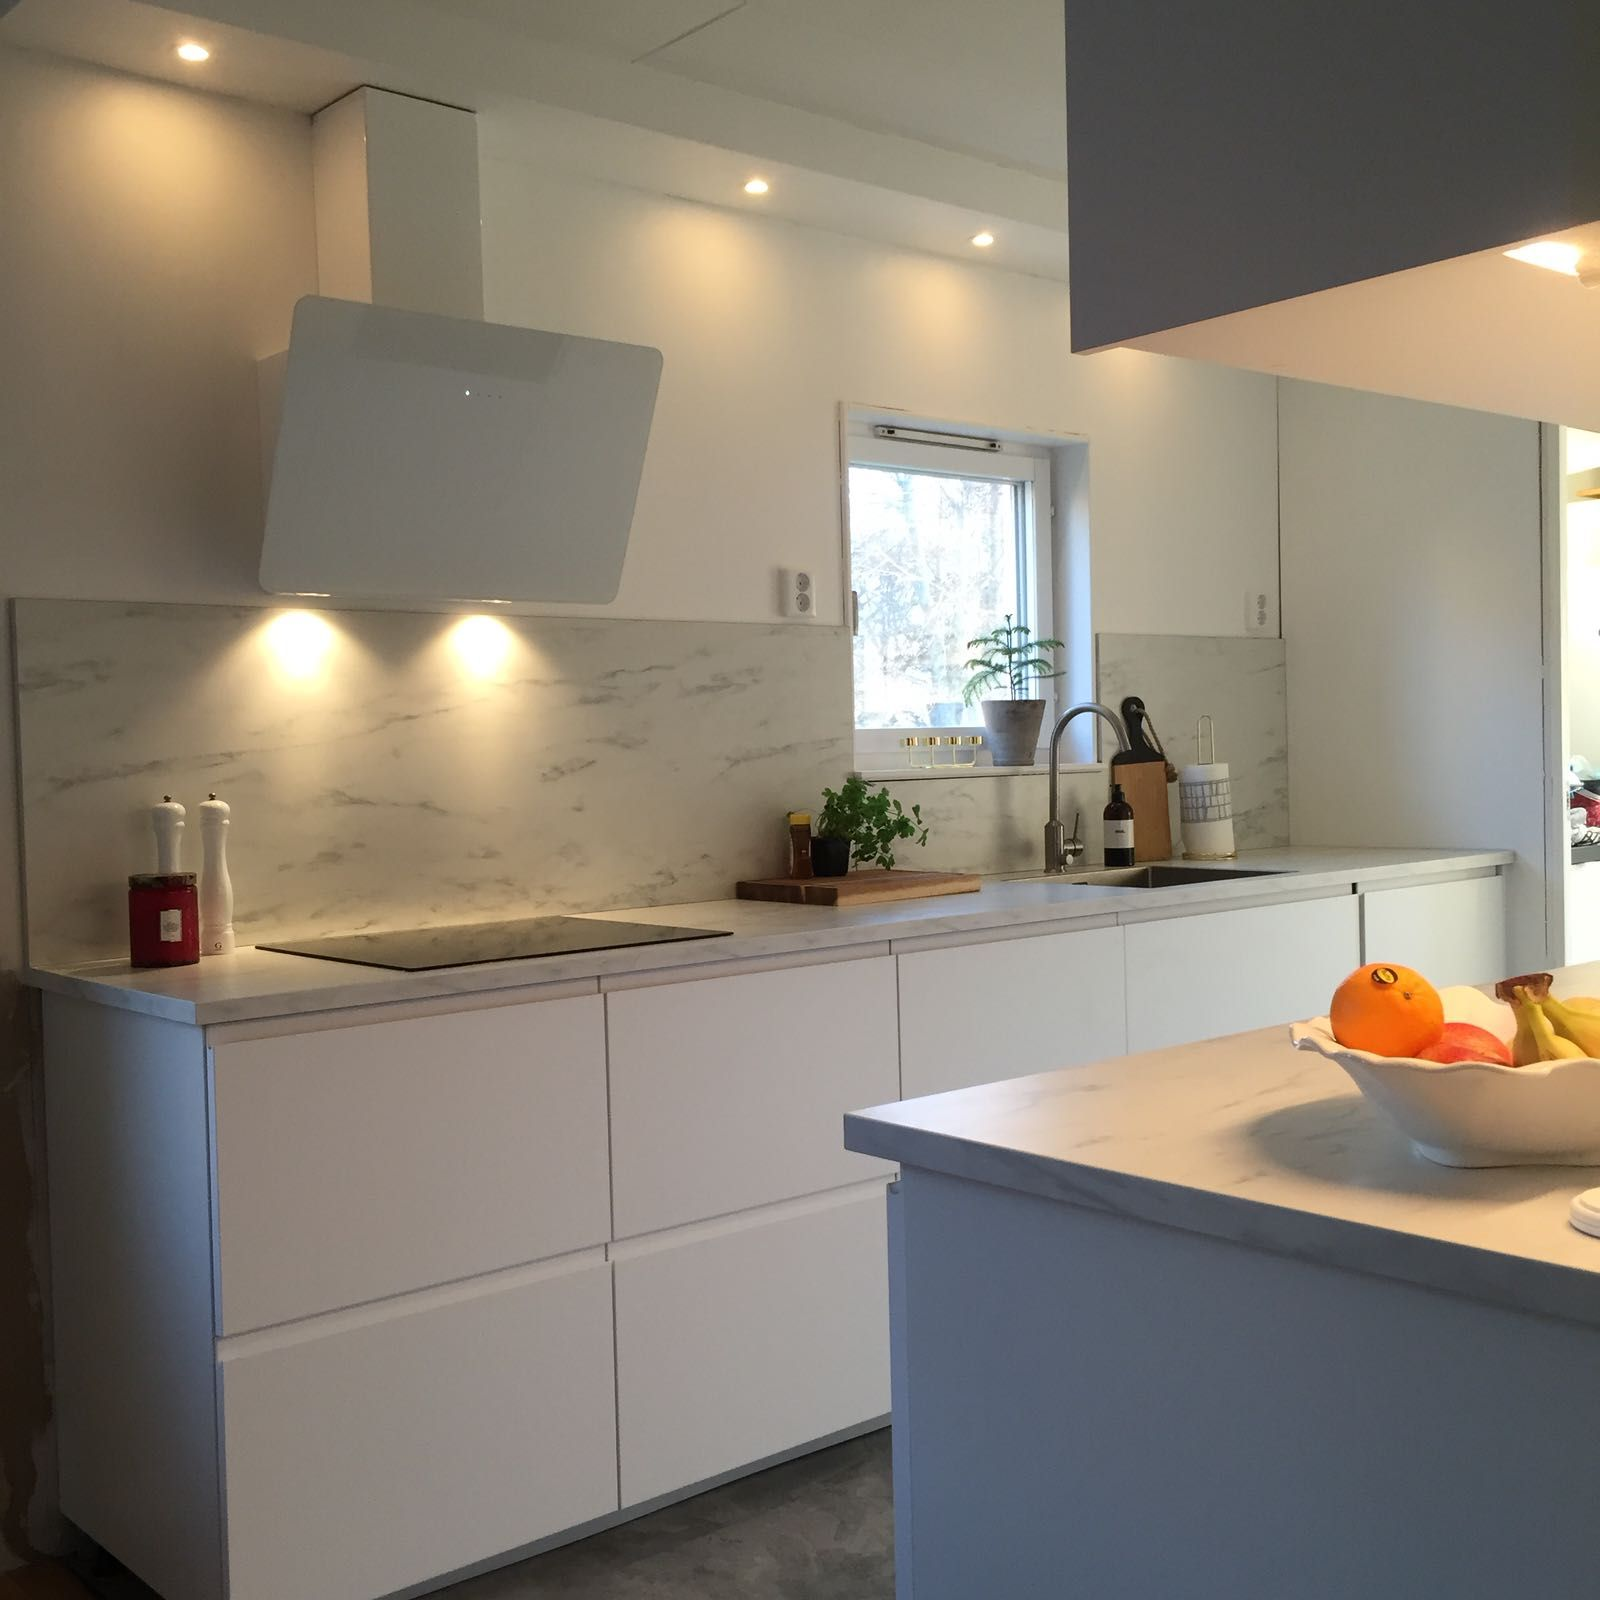 Ikea Voxtorp Voxtorp Ikea Kitchen Pinterest Kitchens Kitchen